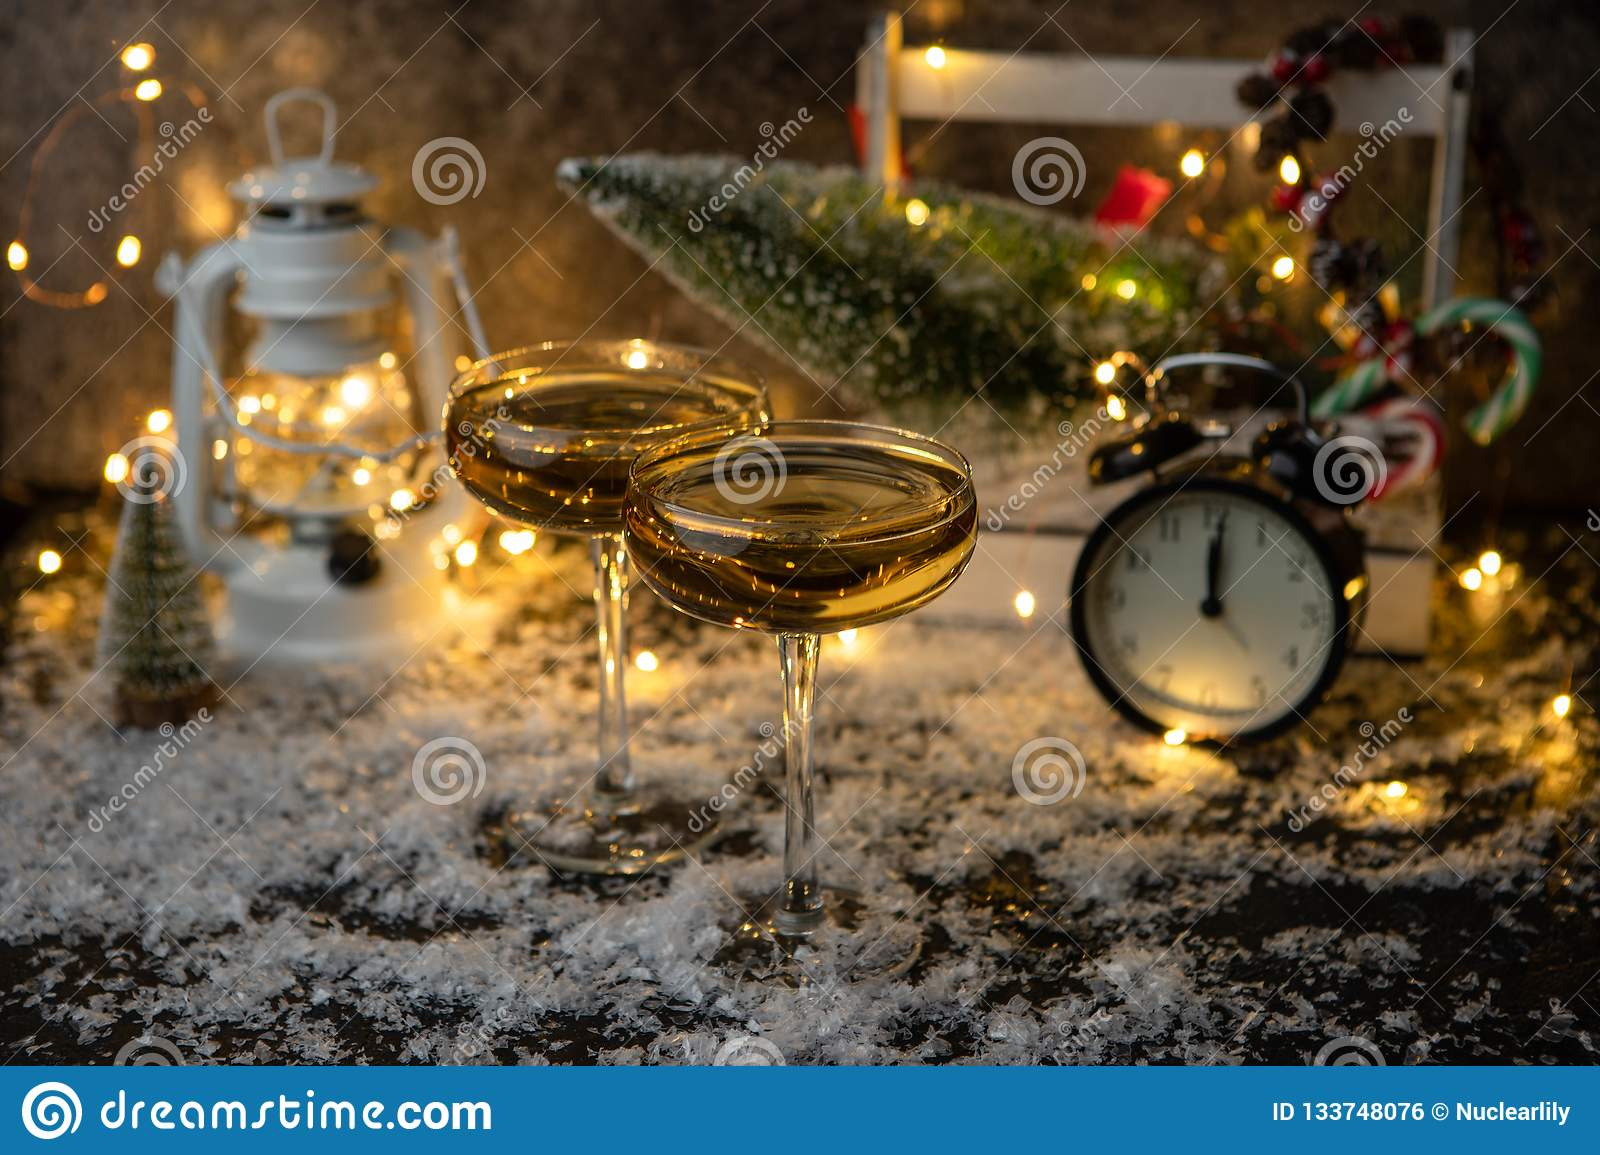 Image of two champagne glasses on blurred background with Christmas tree, lantern, clock